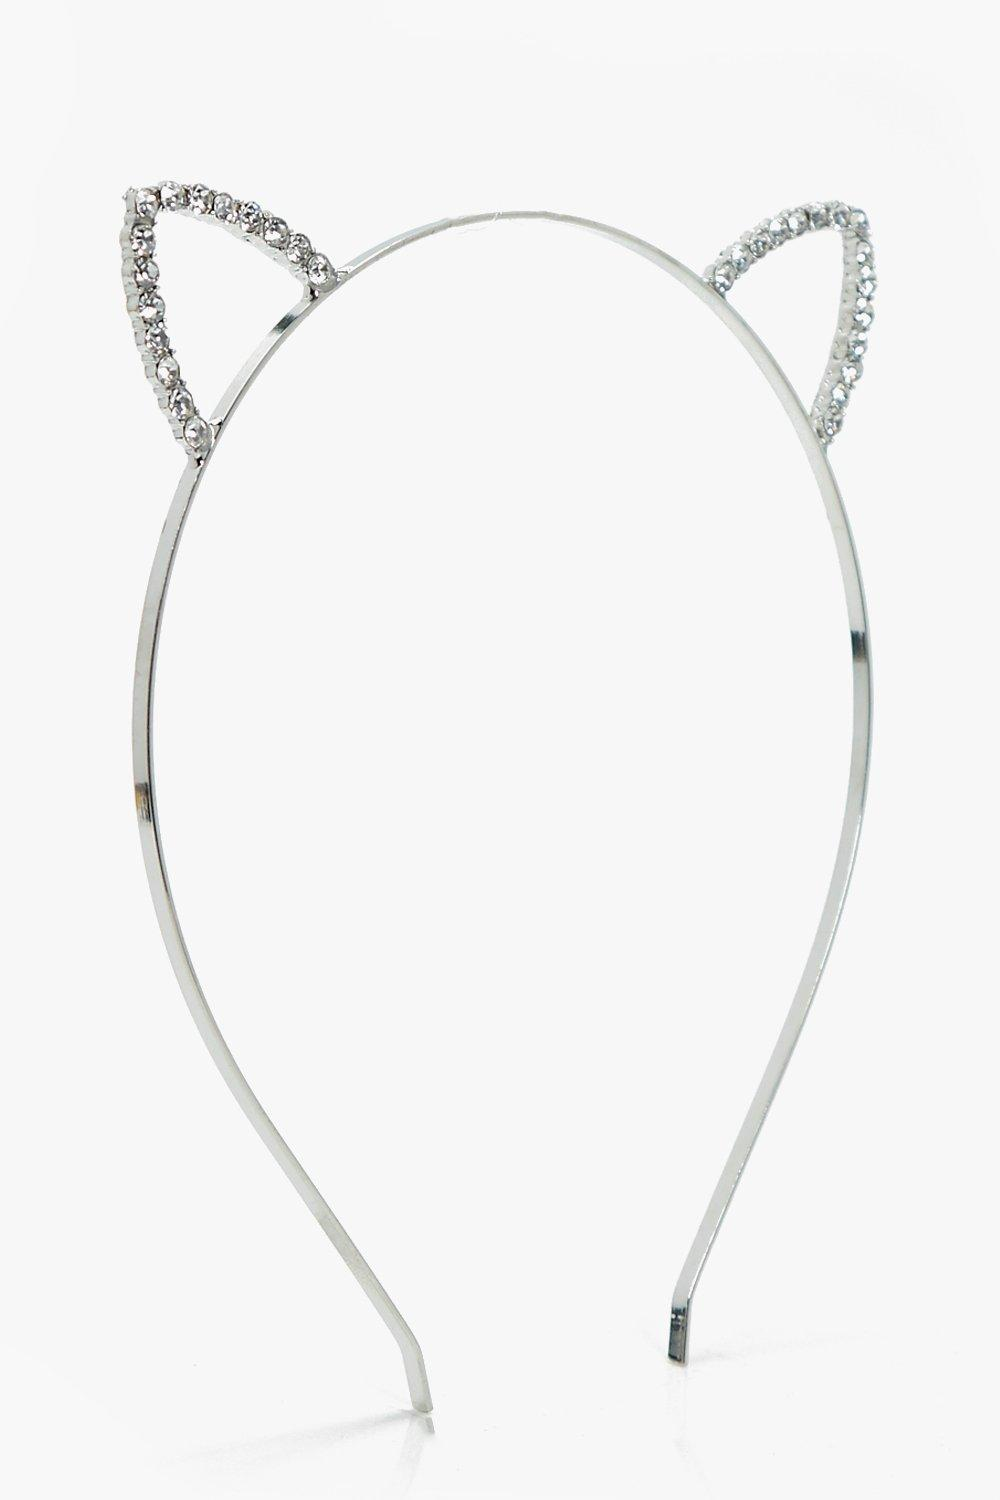 Diamante Cat Ear Headband - silver - Amber Diamant